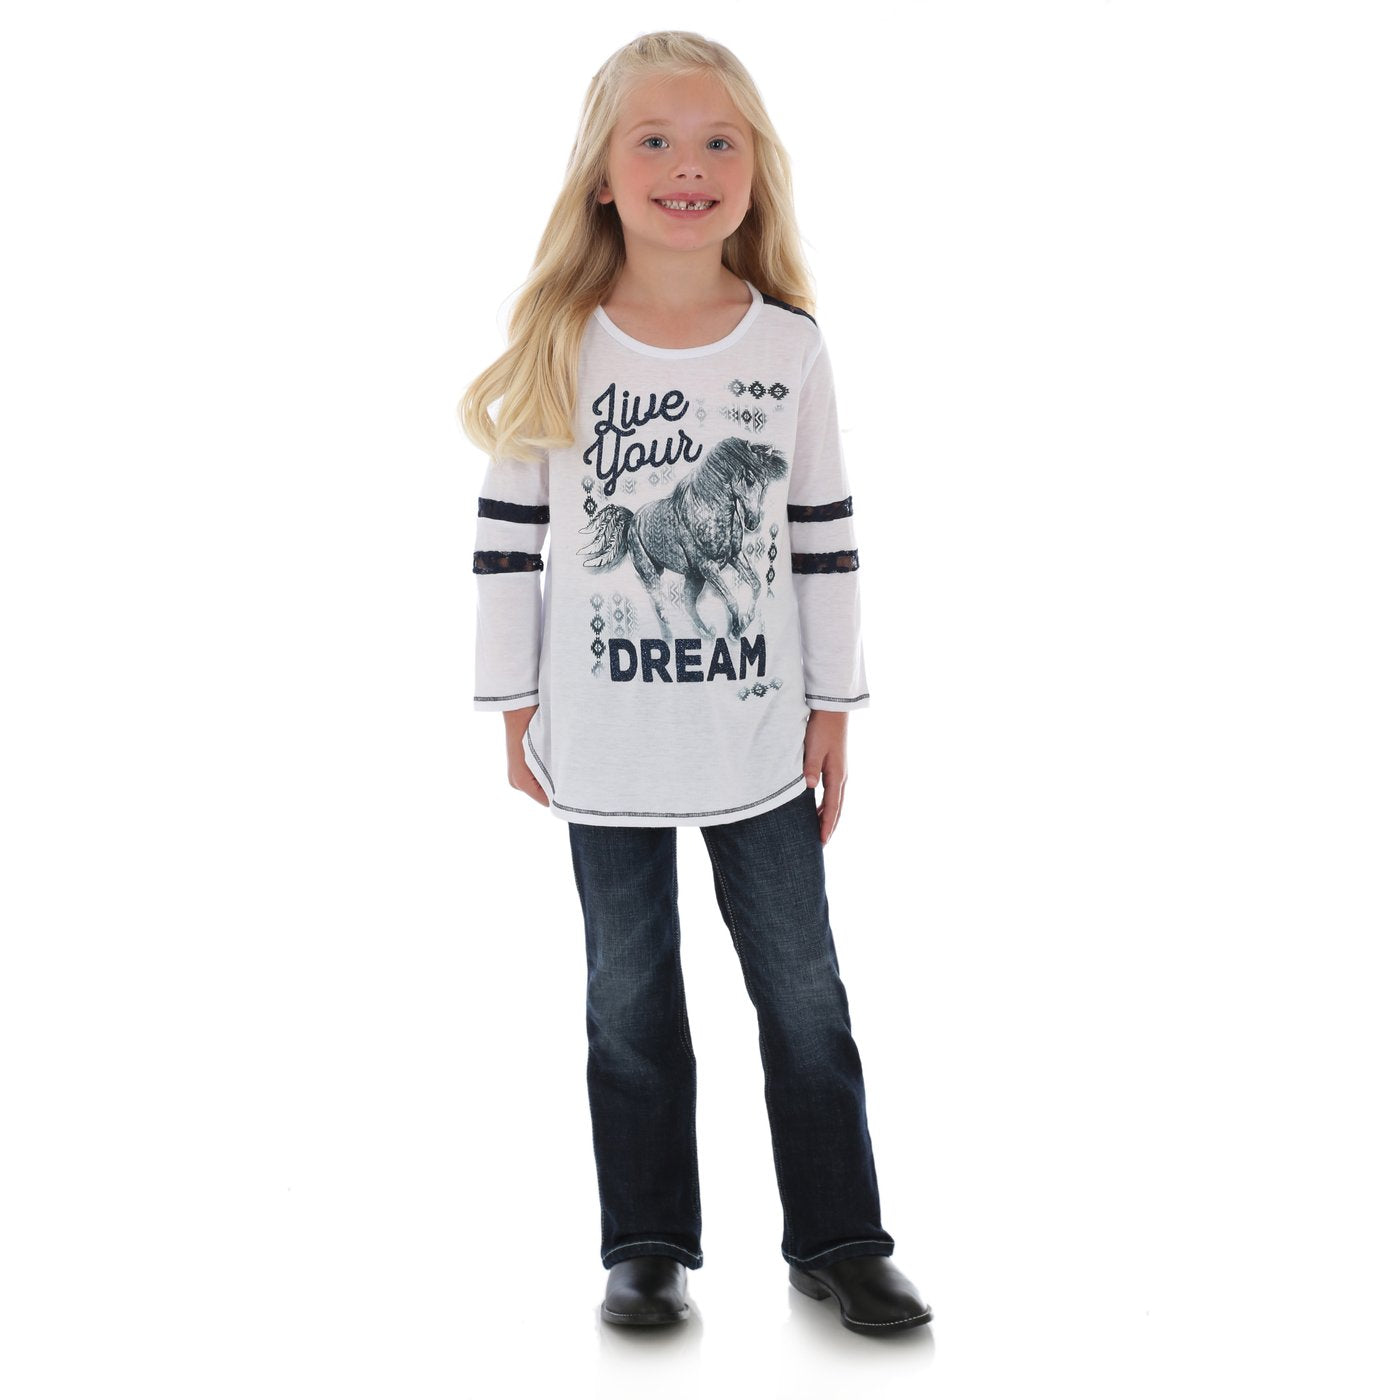 Wrangler Girls Live Your Dream 3/4 Sleeve Top